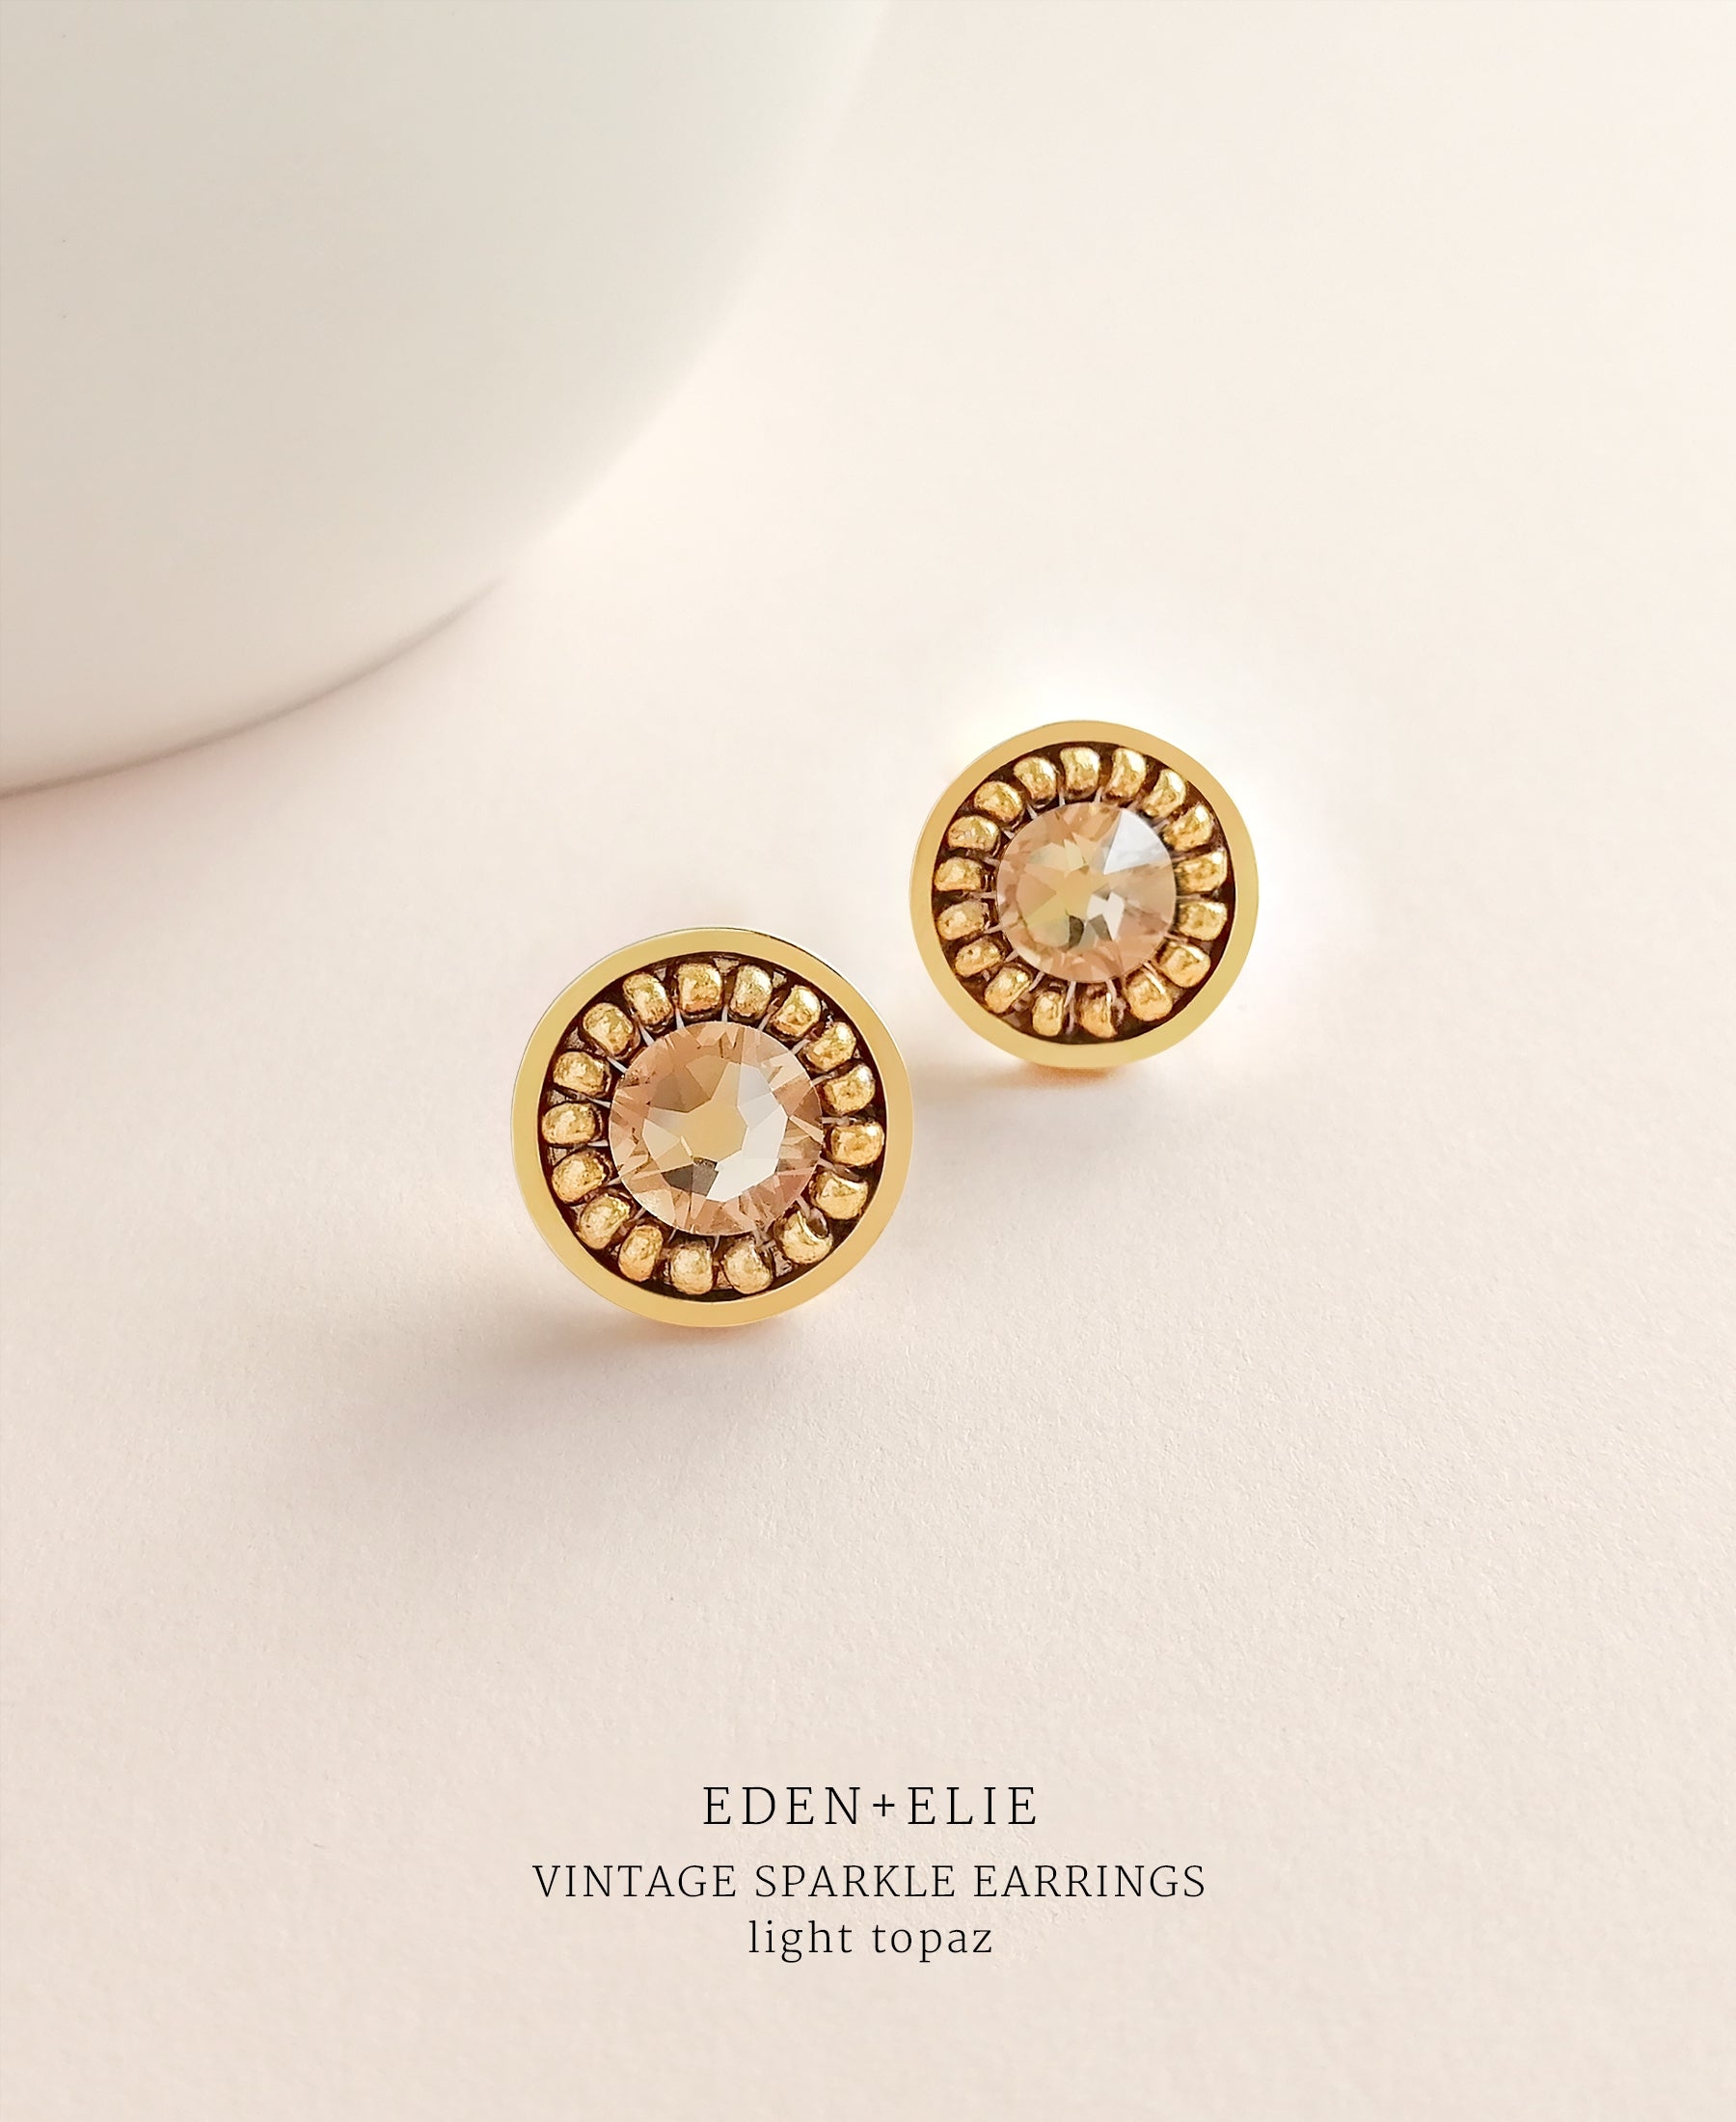 EDEN + ELIE gold plated jewelry Vintage Sparkle stud earrings - light topaz